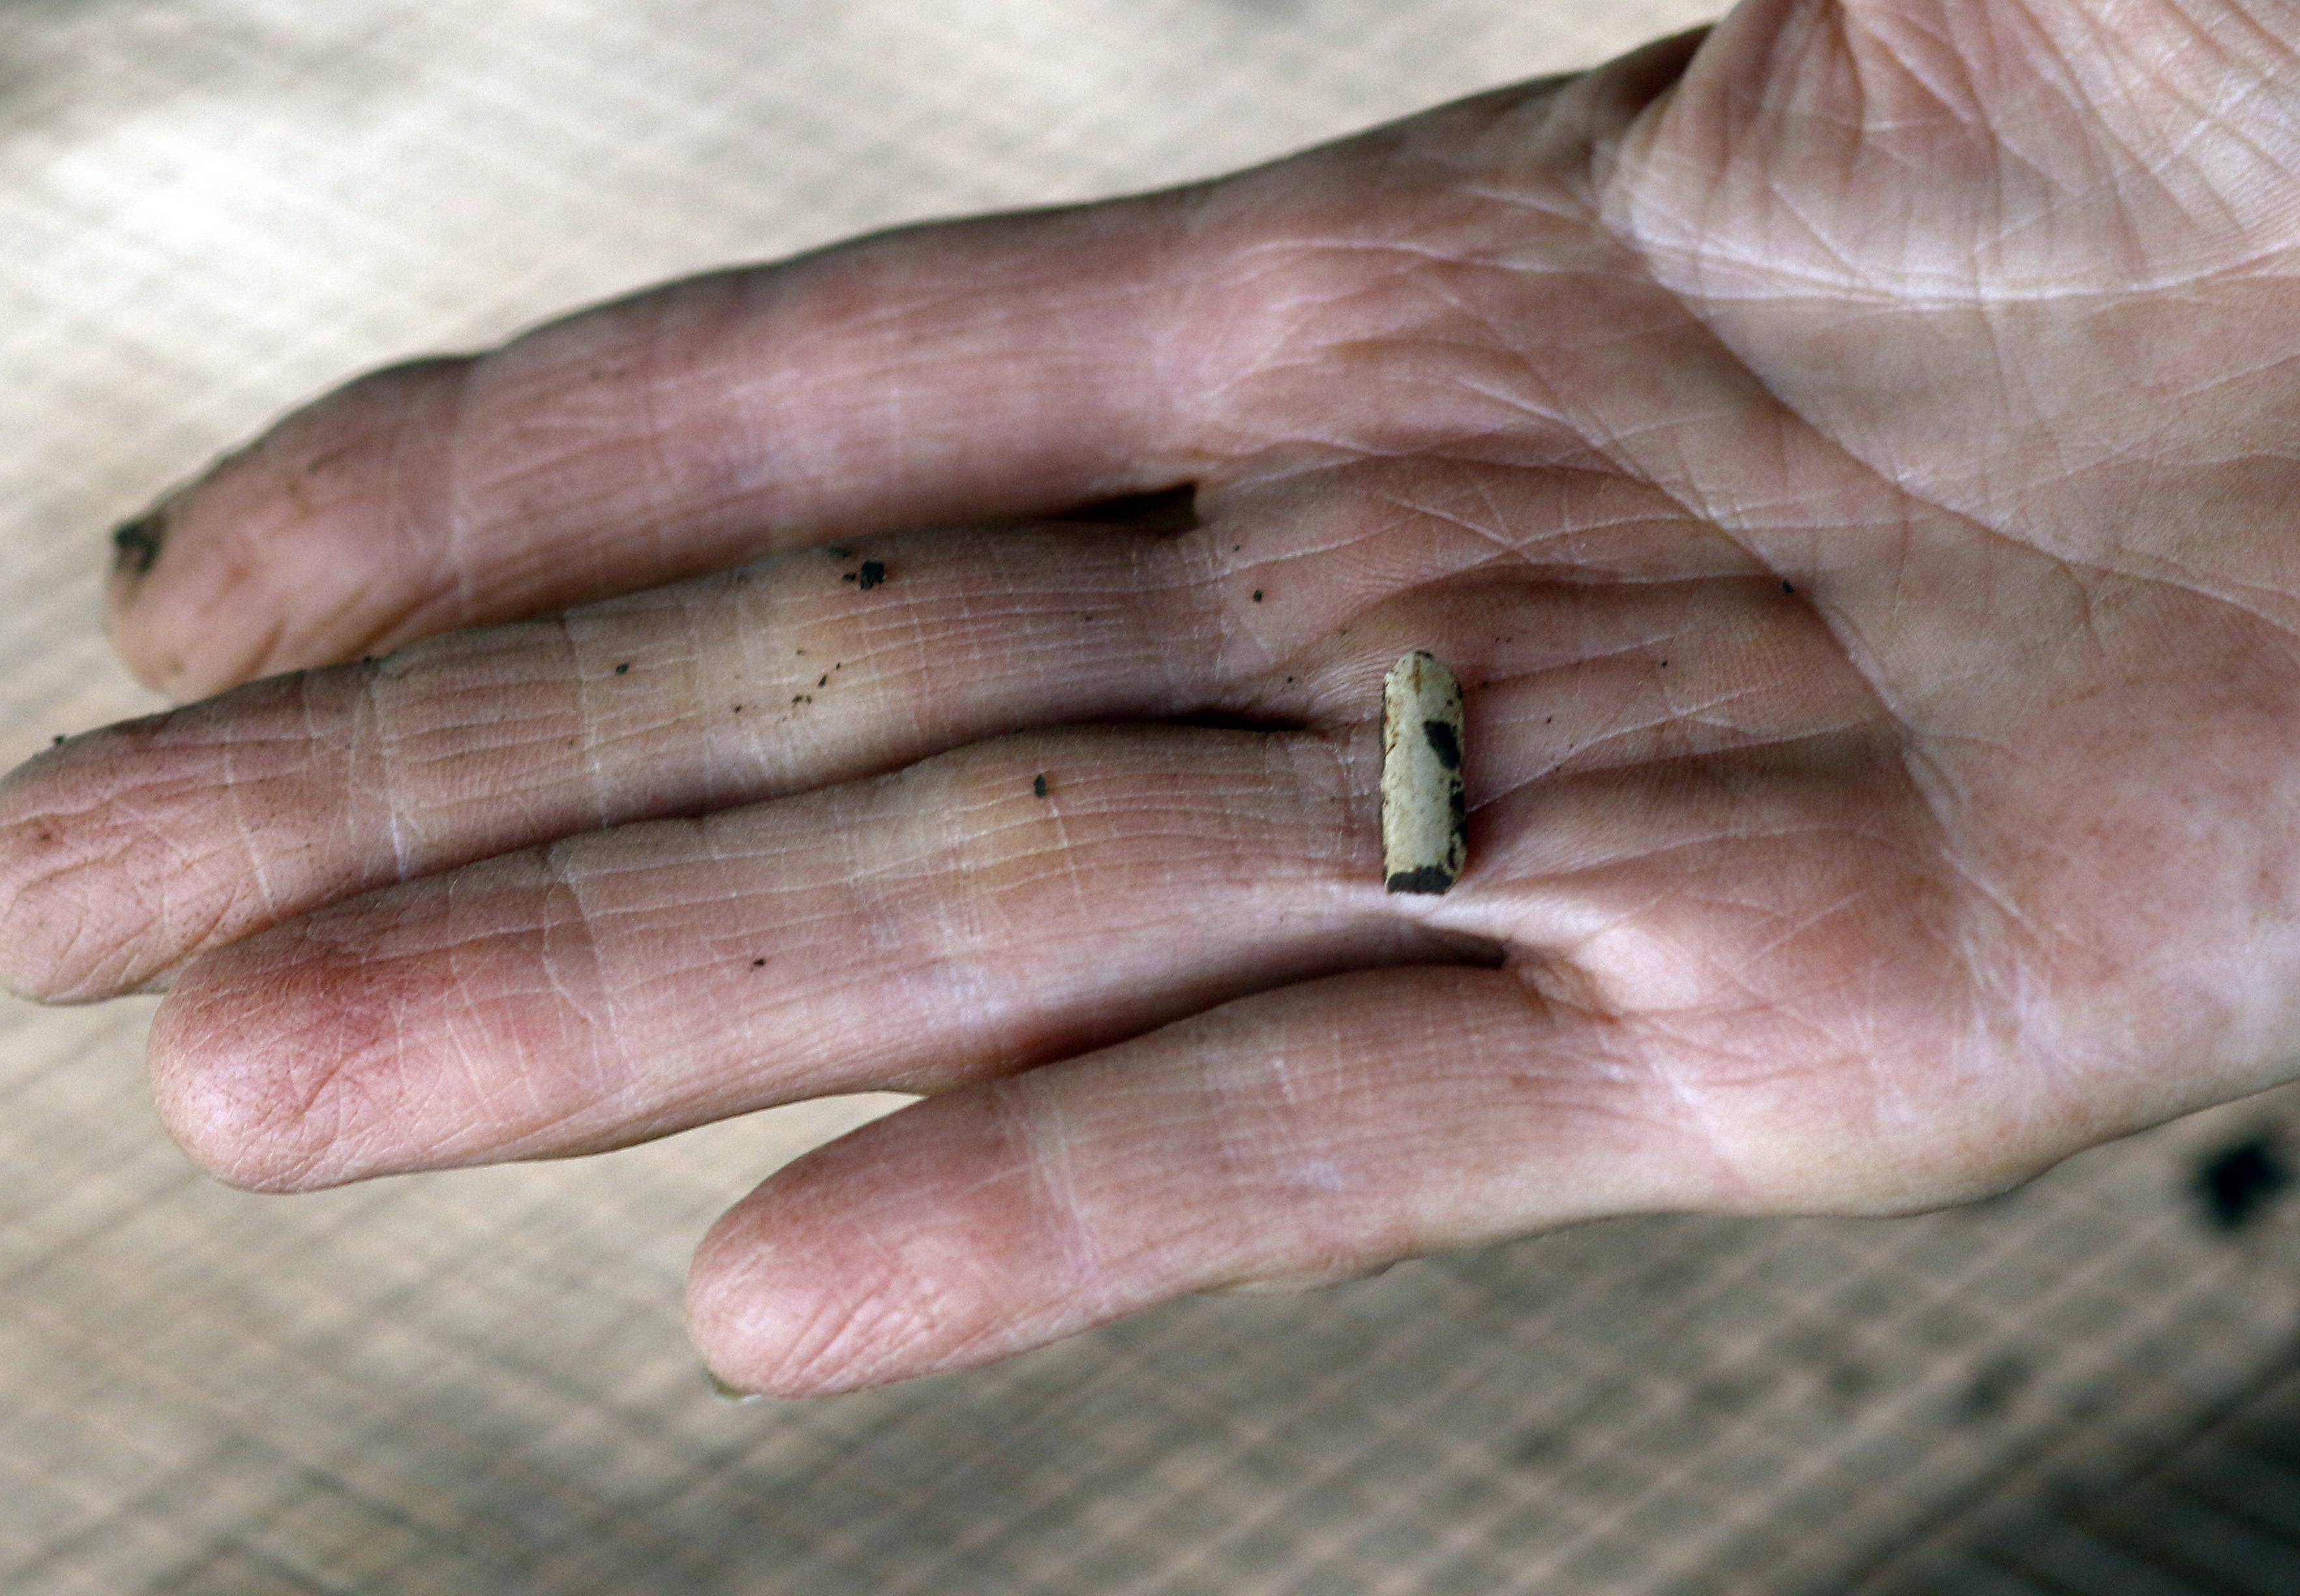 A volunteer holds up a small part of a pipe that was found Wednesday at Garfield Farm in La Fox.